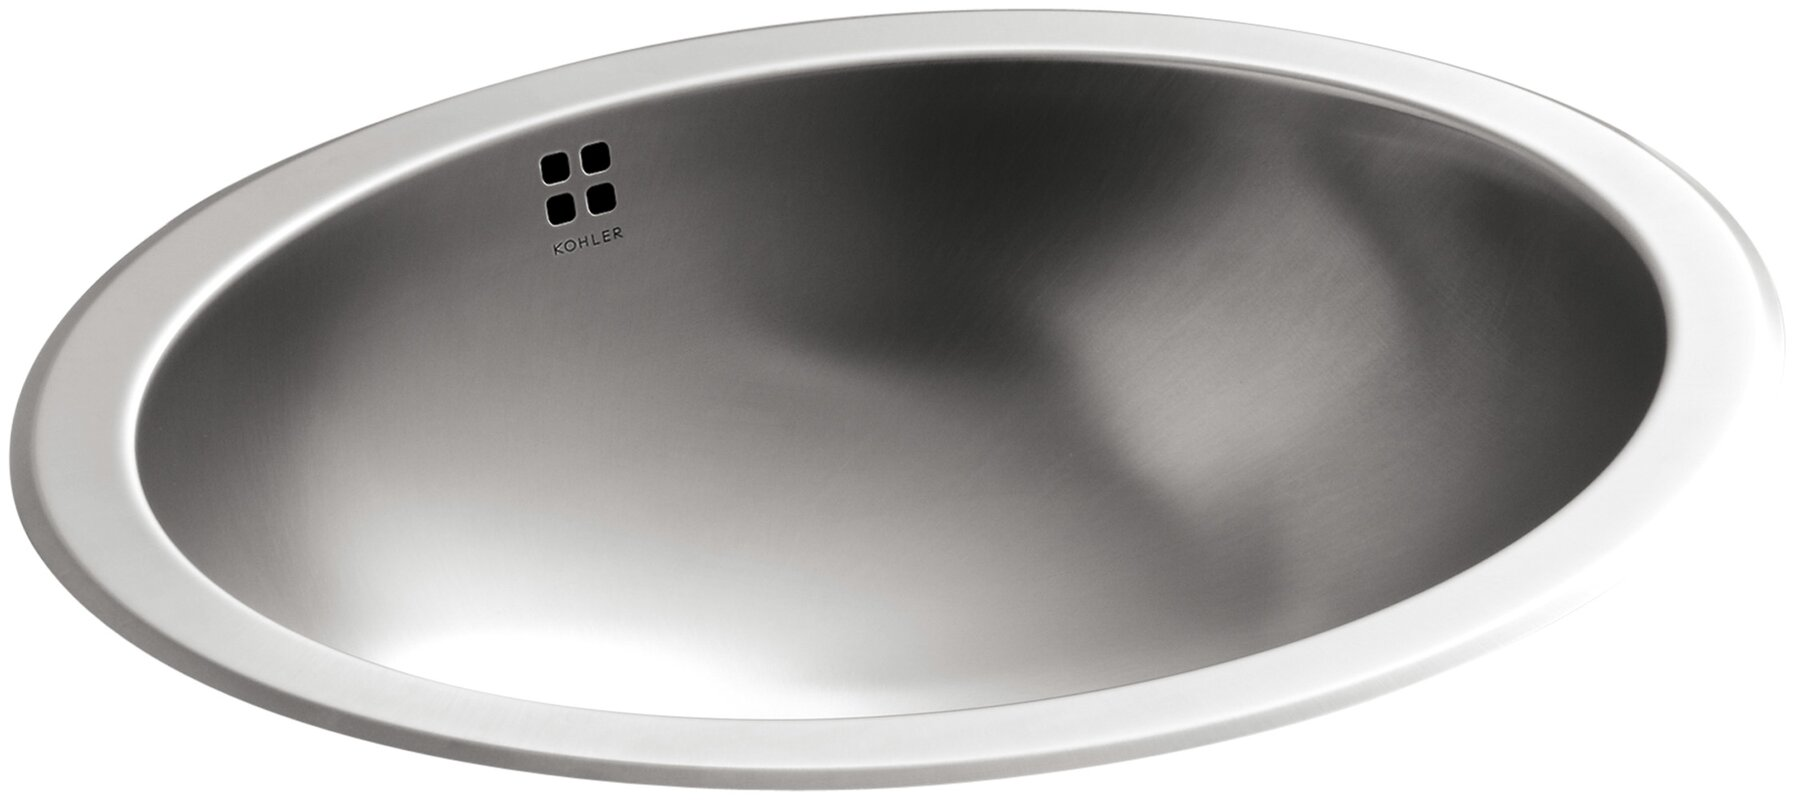 Kohler Bachata Oval Undermount Bathroom Sink With Overflow